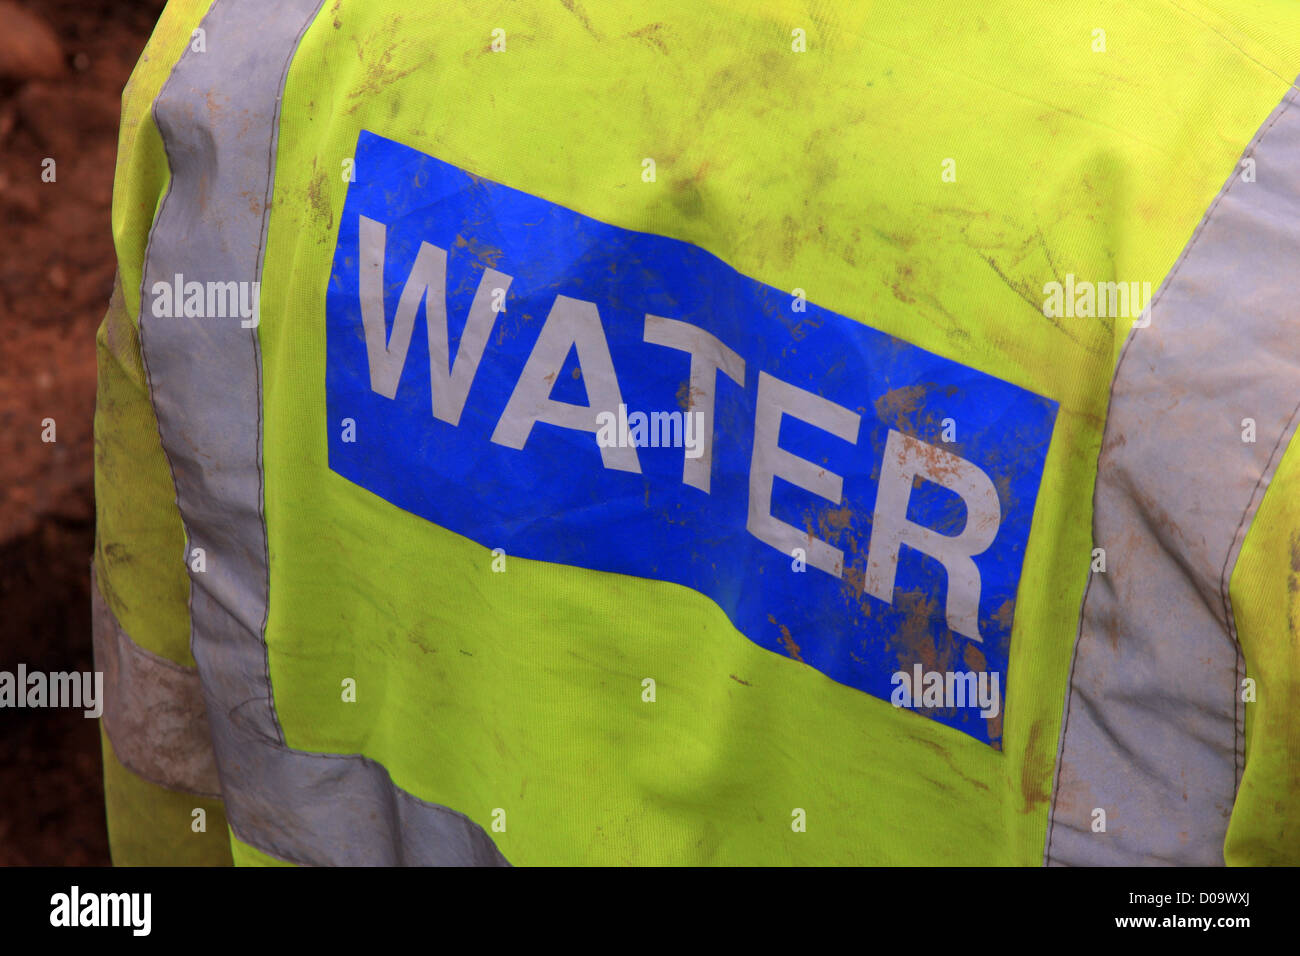 high vis vest with Water written on it - Stock Image